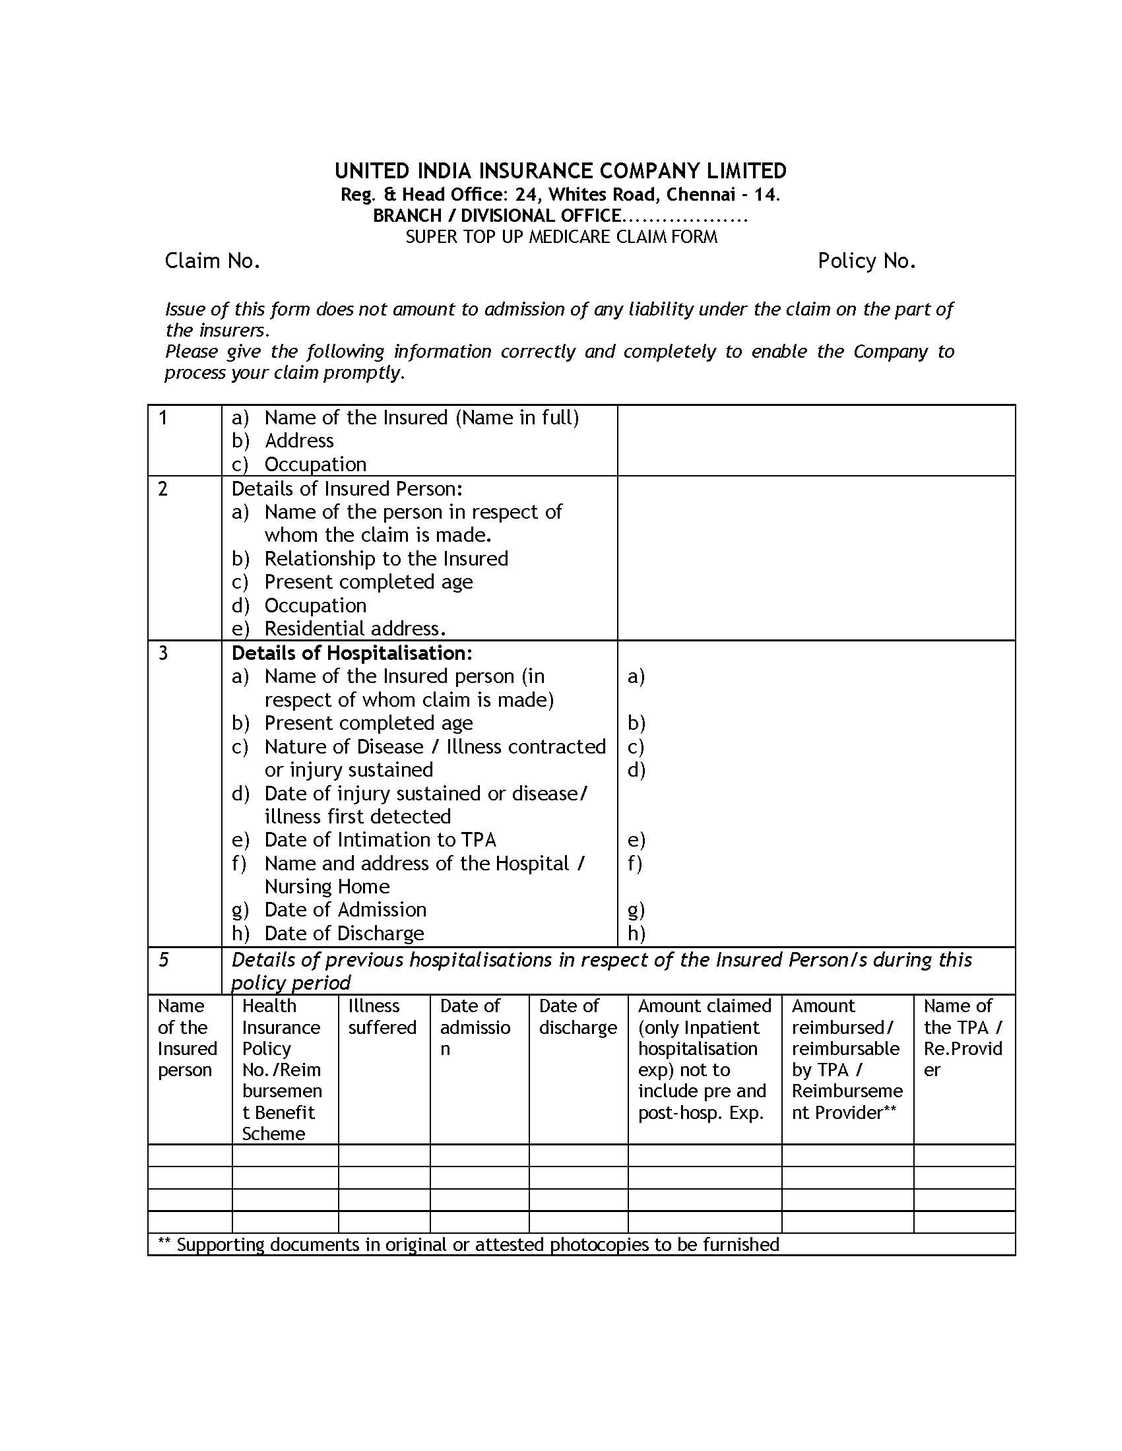 Study of Various Proposal and Policy Forms Used in General ...